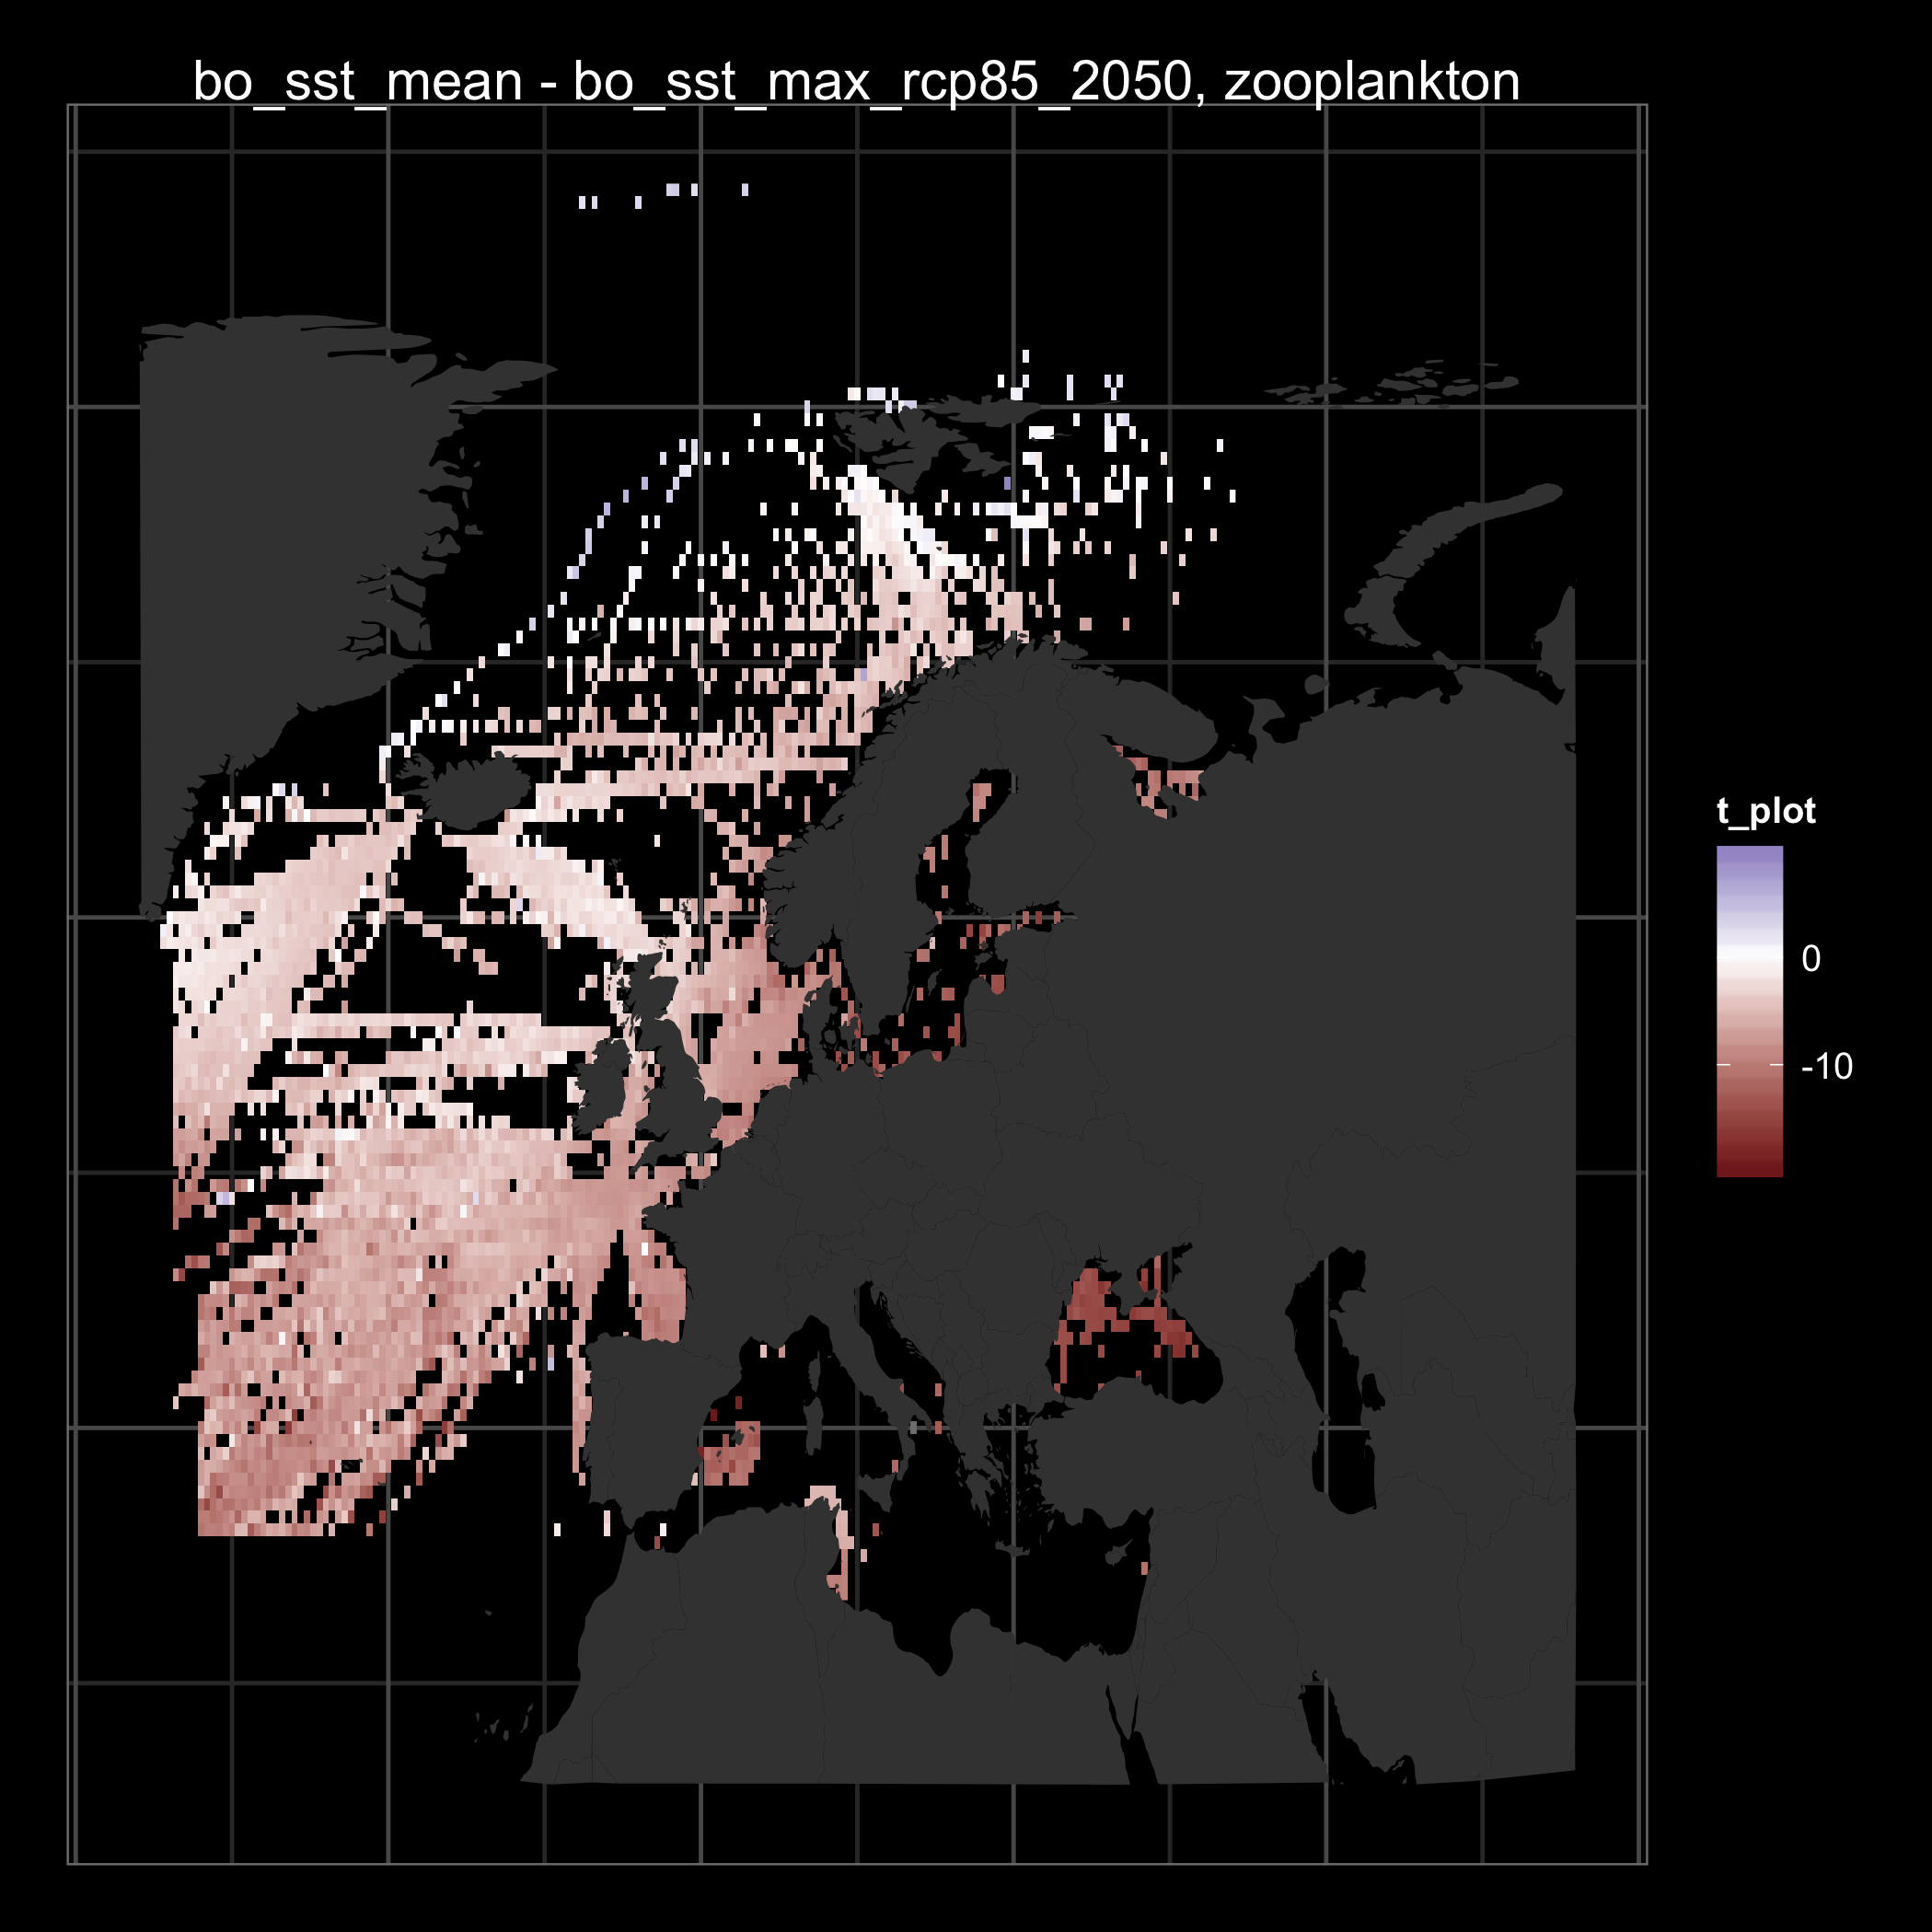 Map showing the difference between mean zooplankton thermal affinity based on mean sea surface temperature (SST) and expected maximum SST in 2050